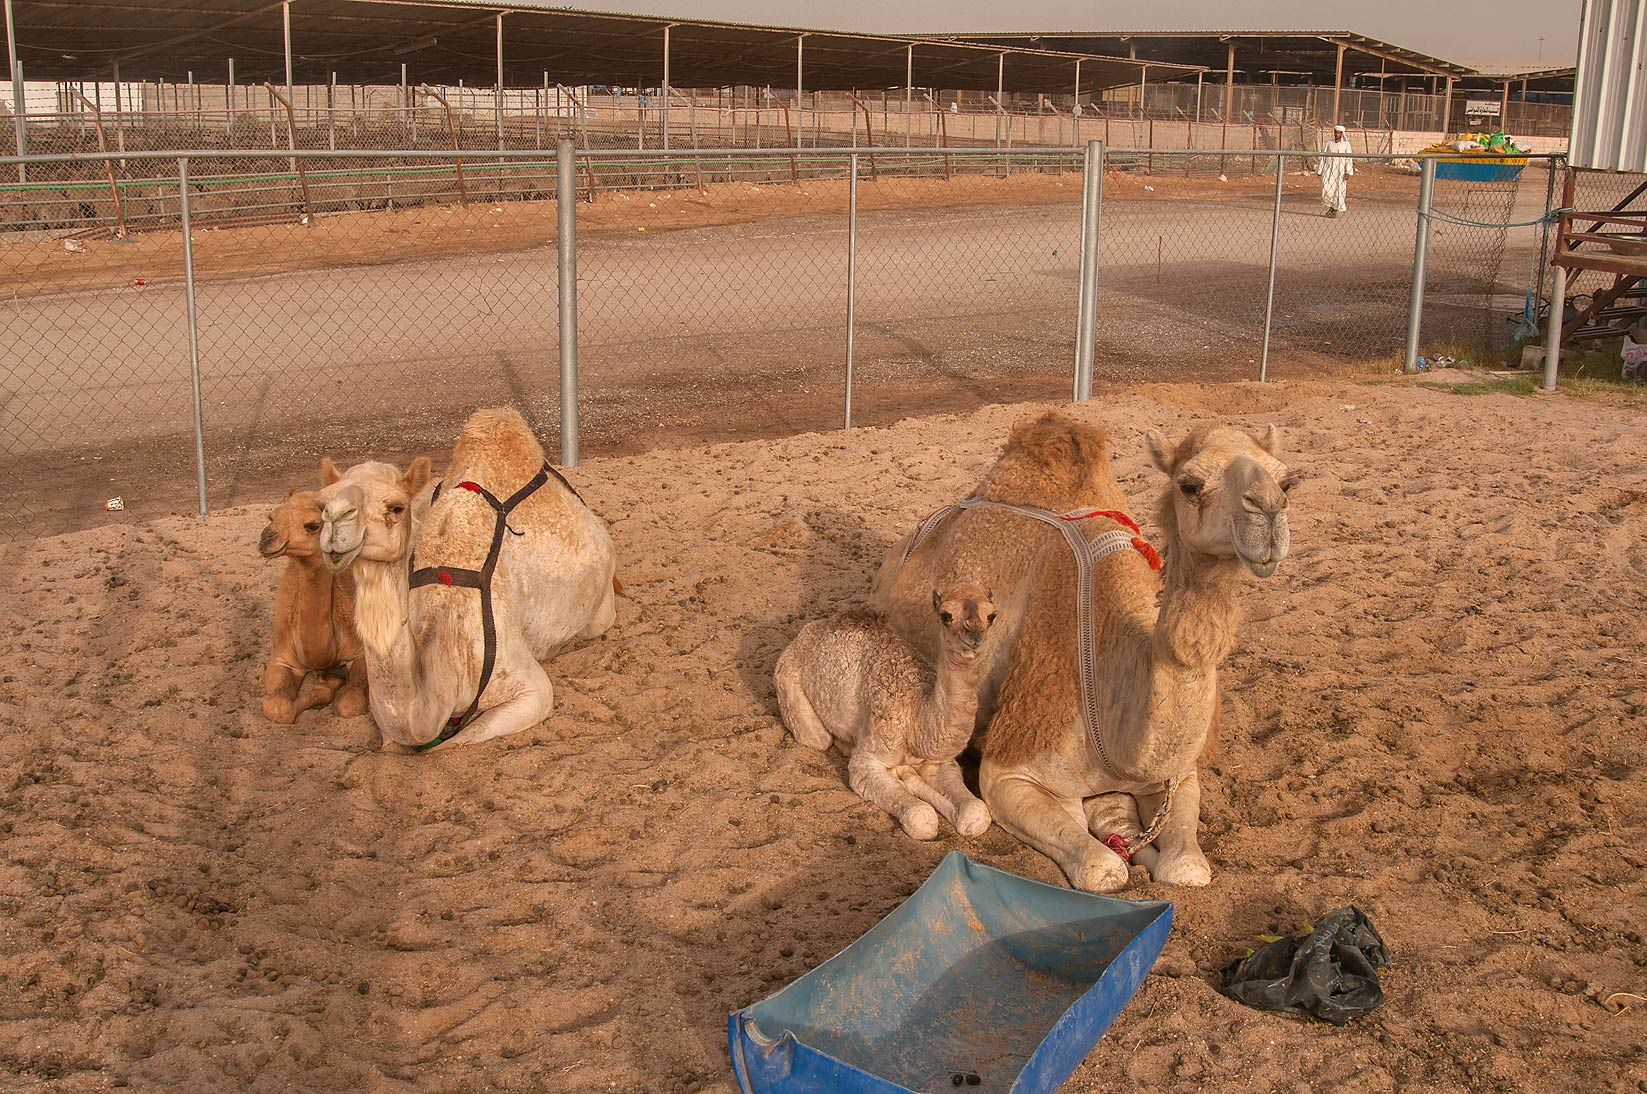 Two families of camels in livestock markets in Abu Hamour. Doha, Qatar